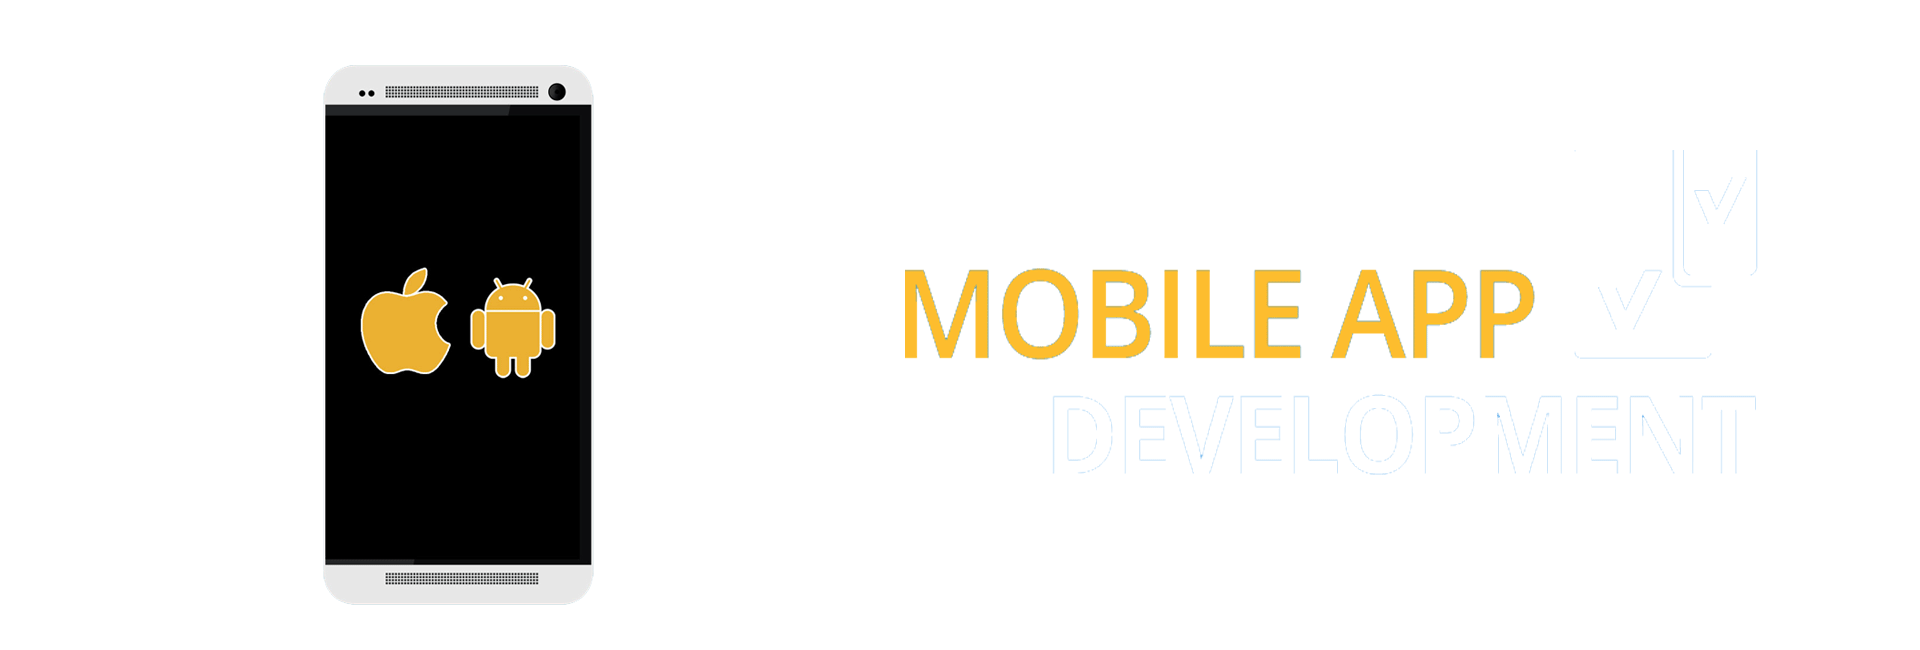 mobile-development-banner